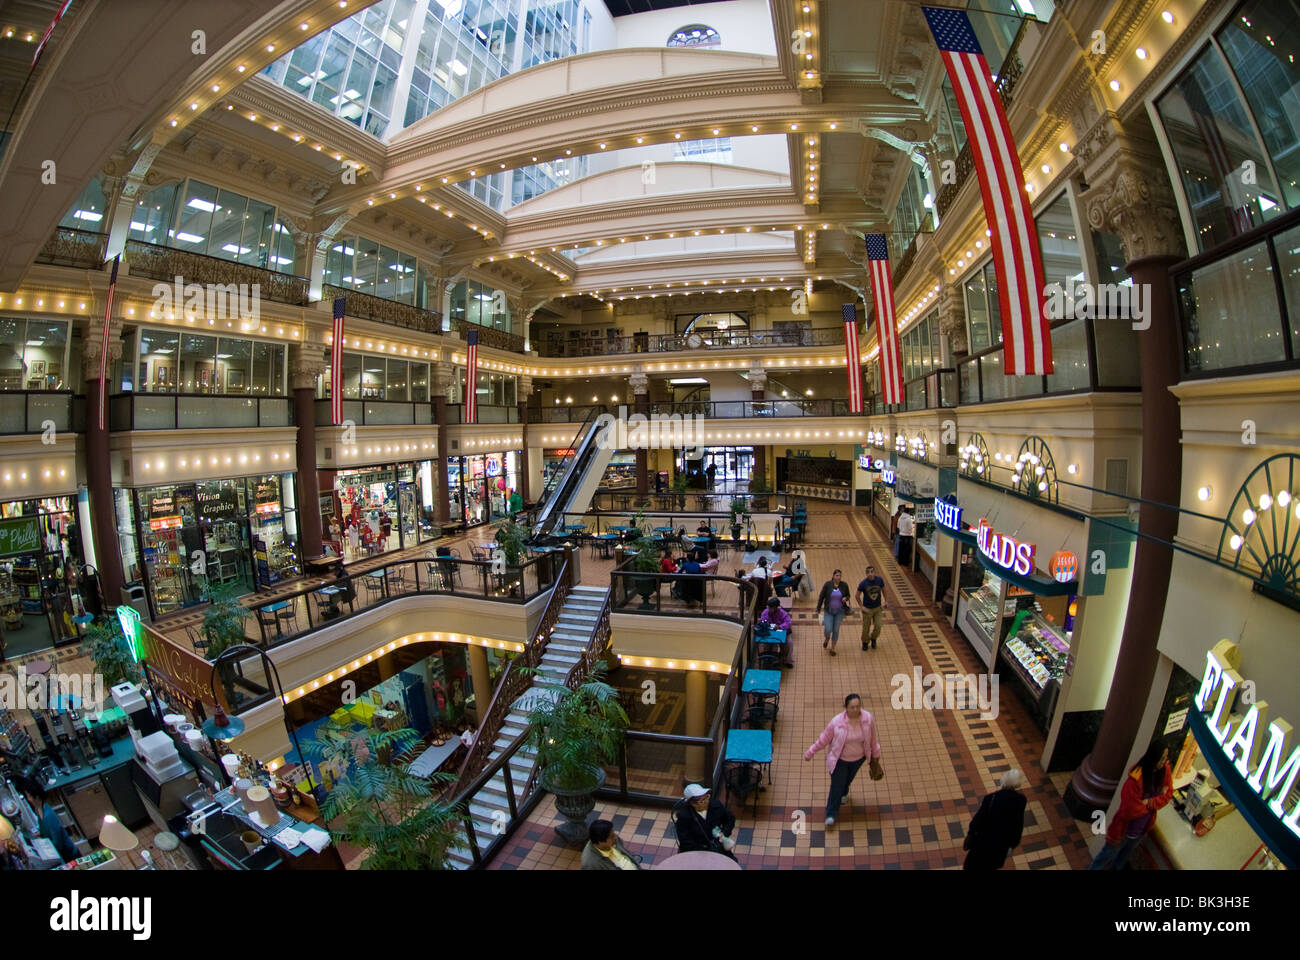 The Bourse off of Independence Mall in Philadelphia, PA - Stock Image